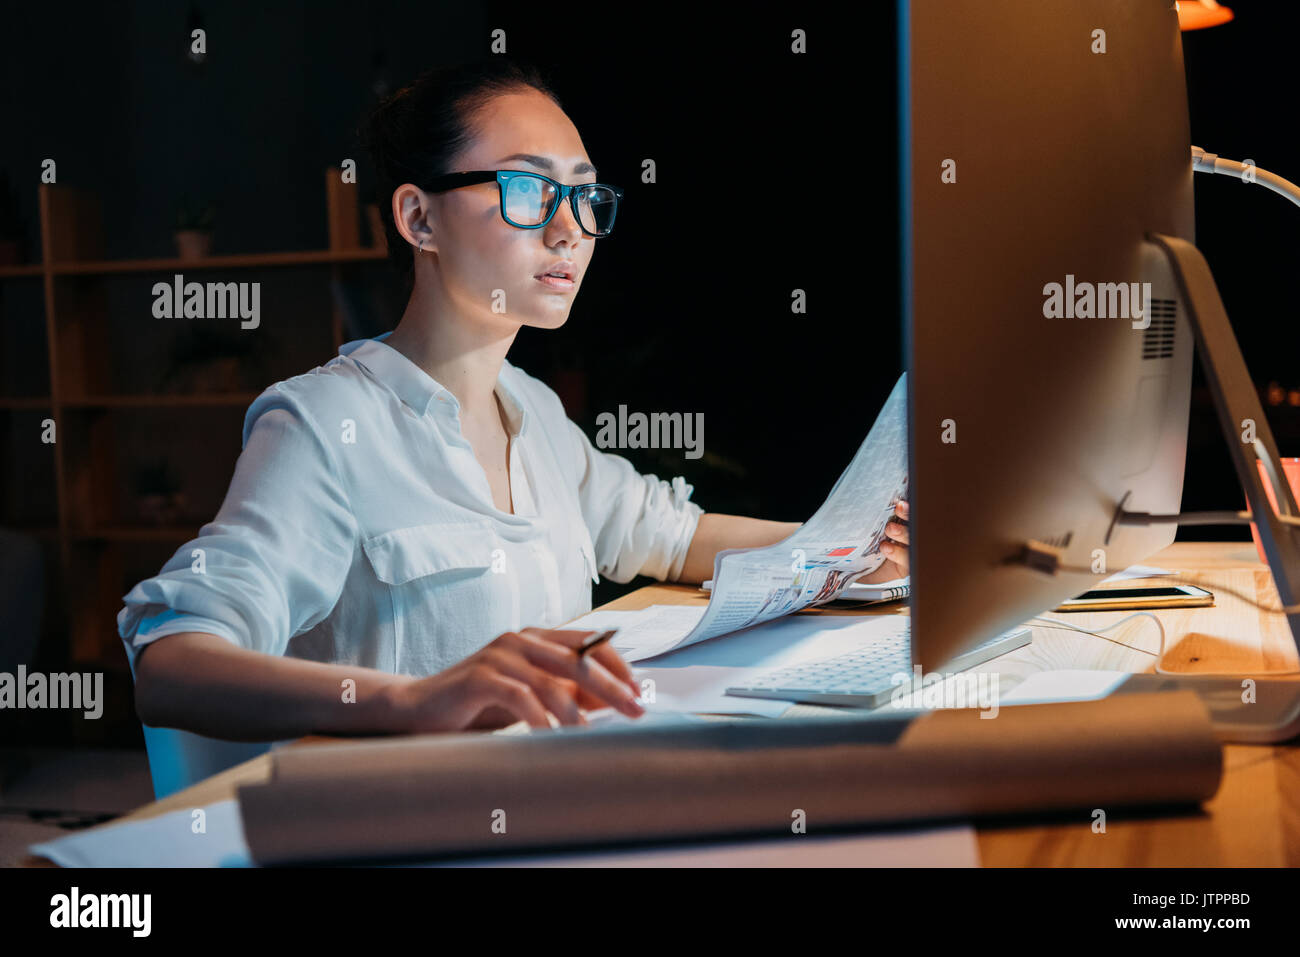 young concentrated asian businesswoman in eyeglasses working with documents and computer - Stock Image